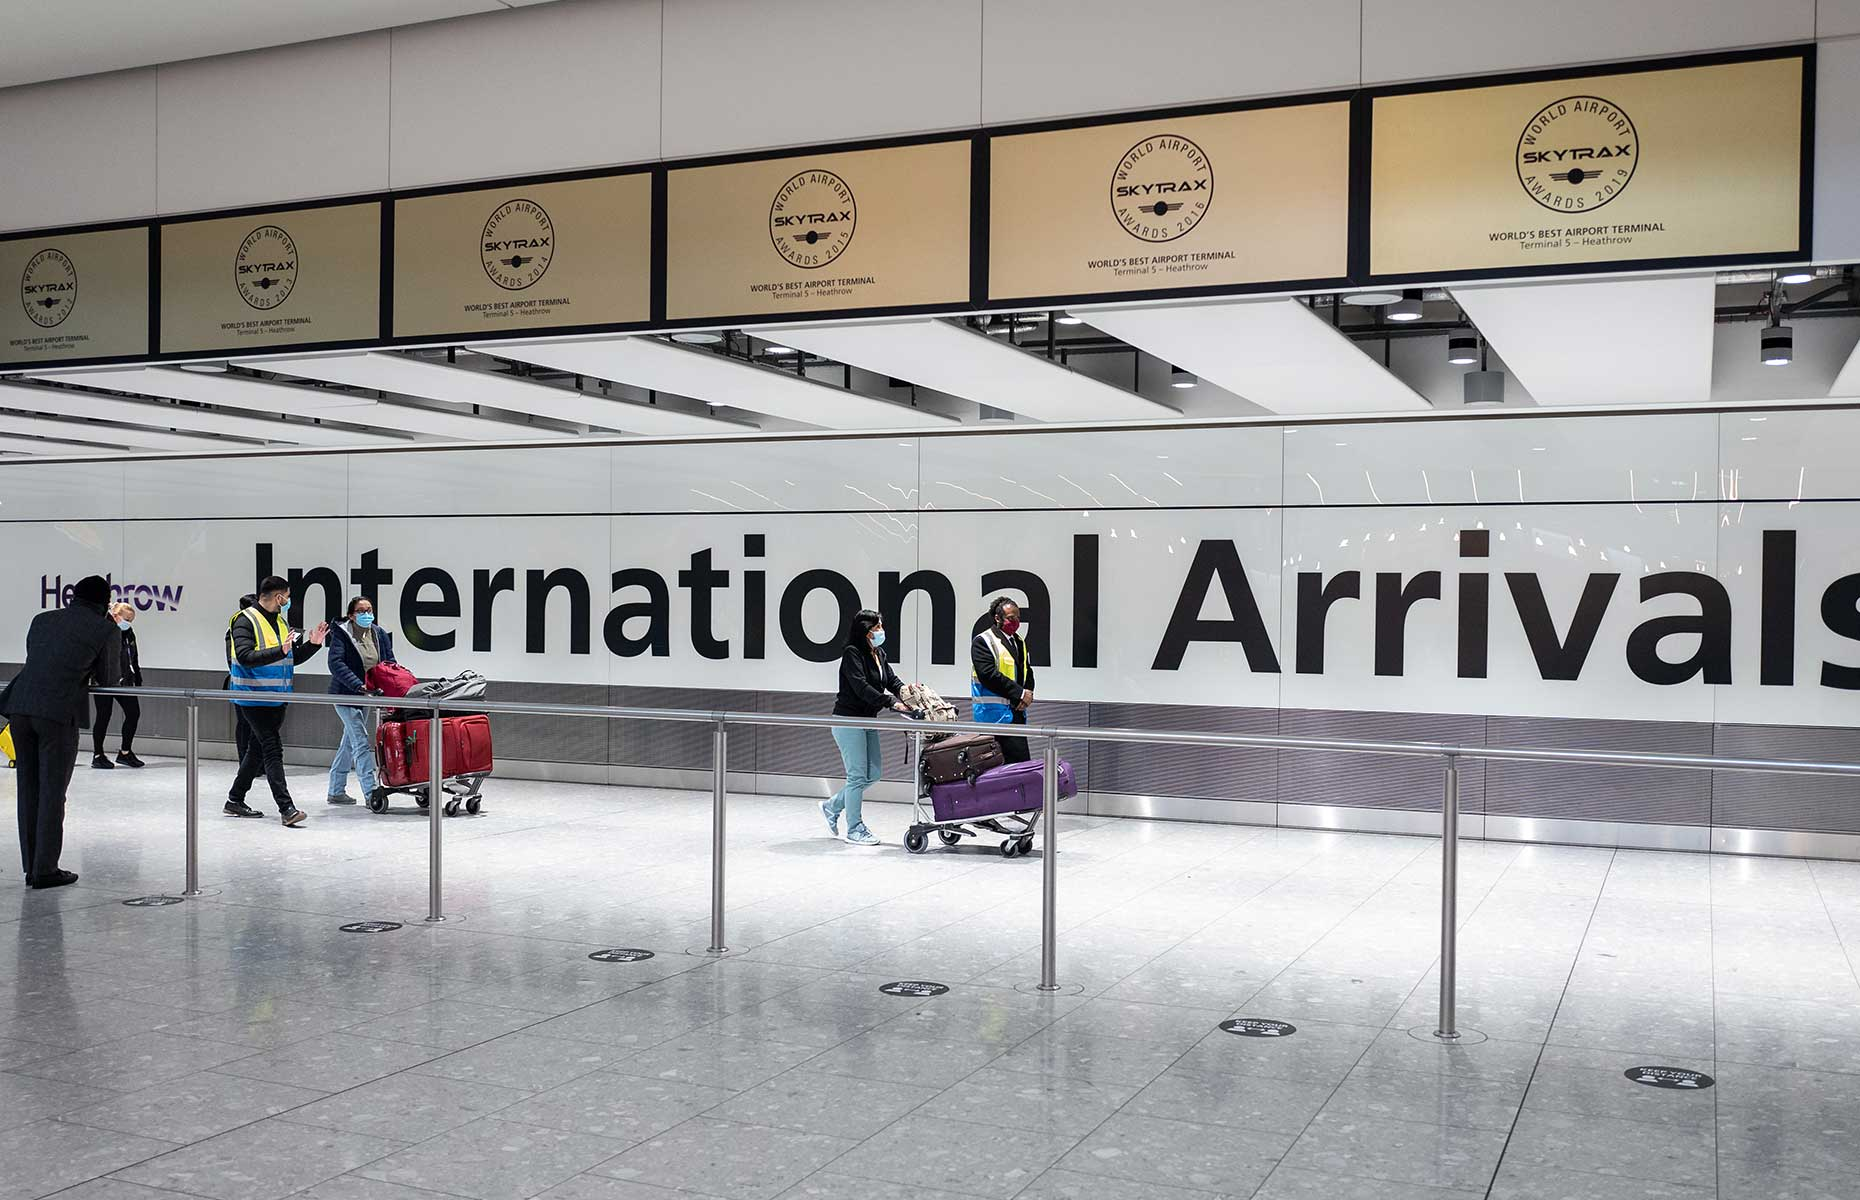 Heathrow International arrivals terminal 5 (Image: Leon Neal/Getty Images)